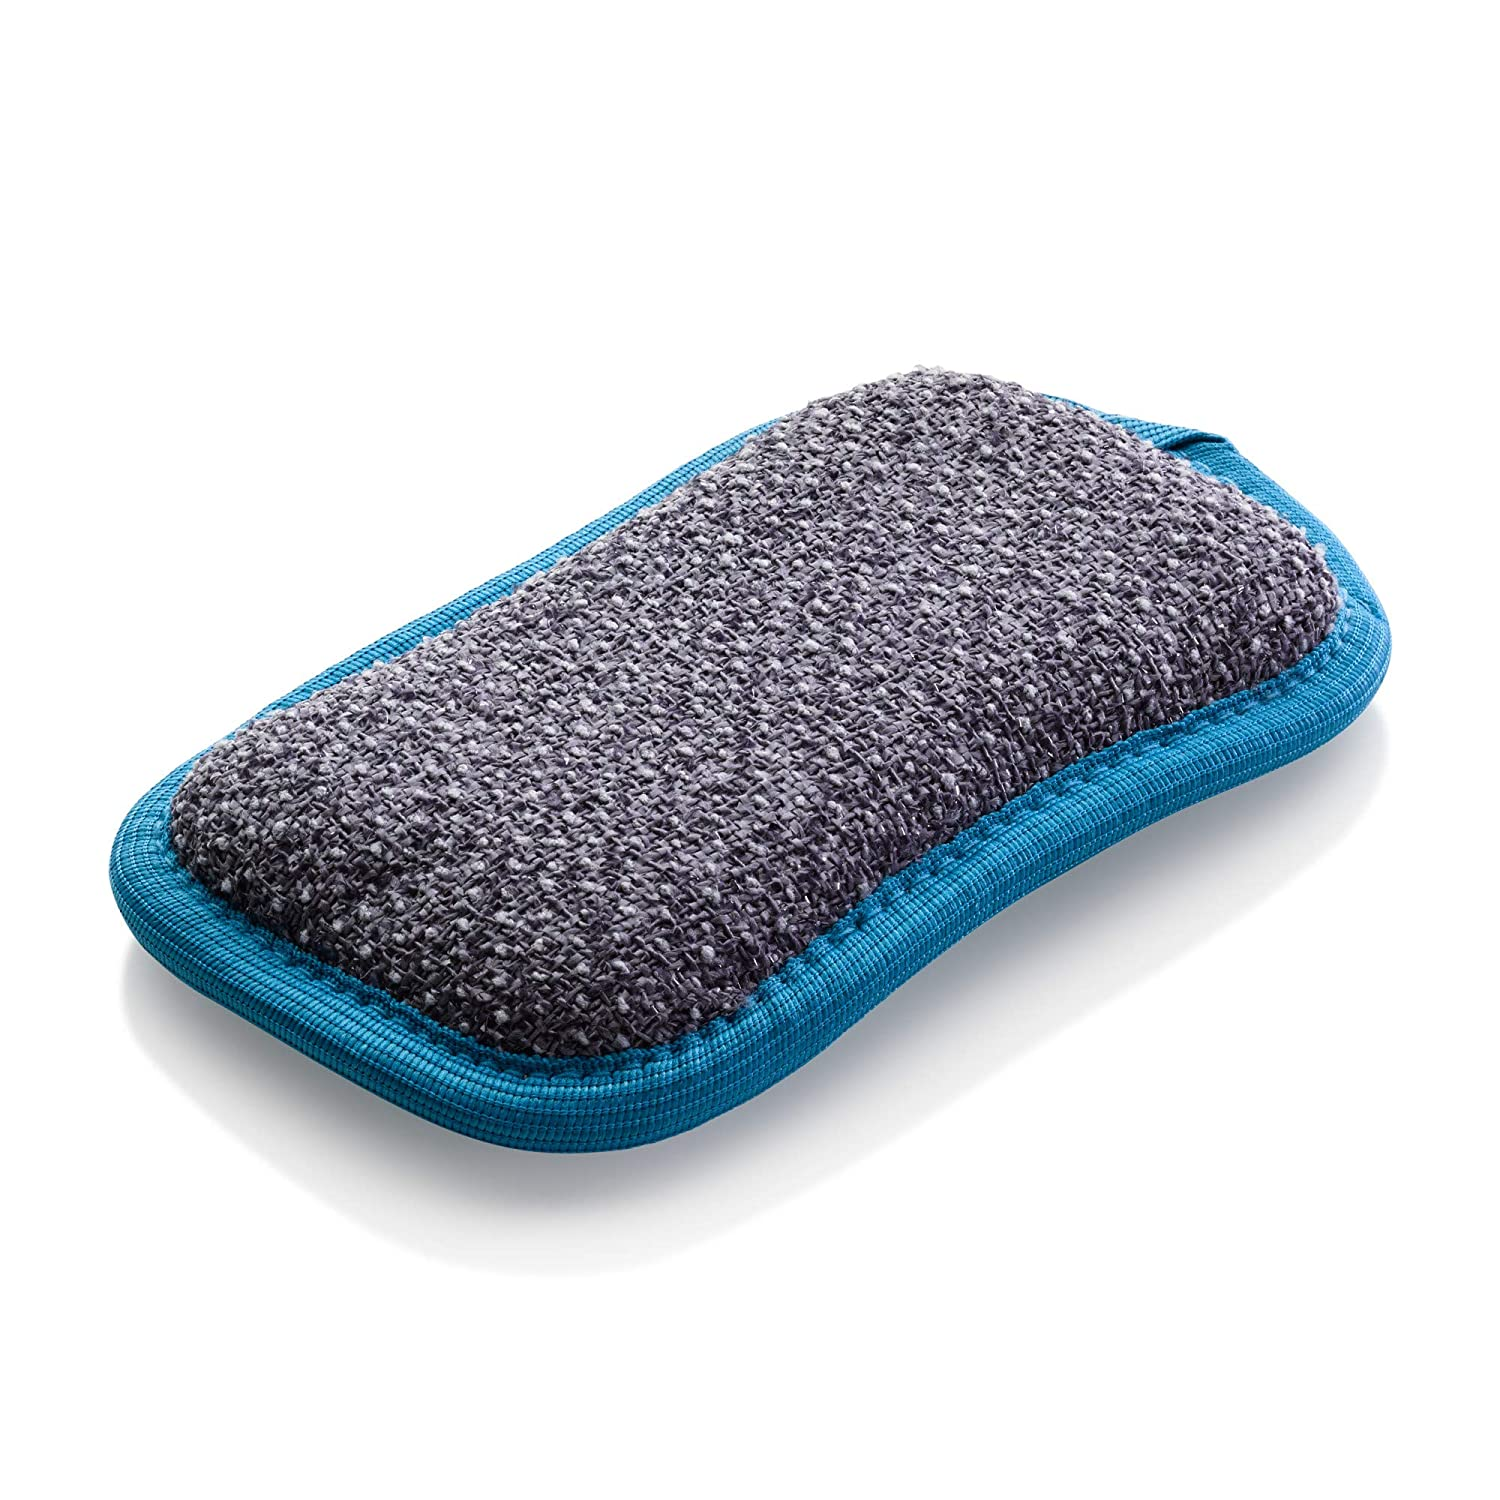 E-Cloth Washing Up Pad - Non-Scratch Kitchen Scrubber/Wiper - Brilliant for Removing Stuck-On Food from Pots & Pans - Blue